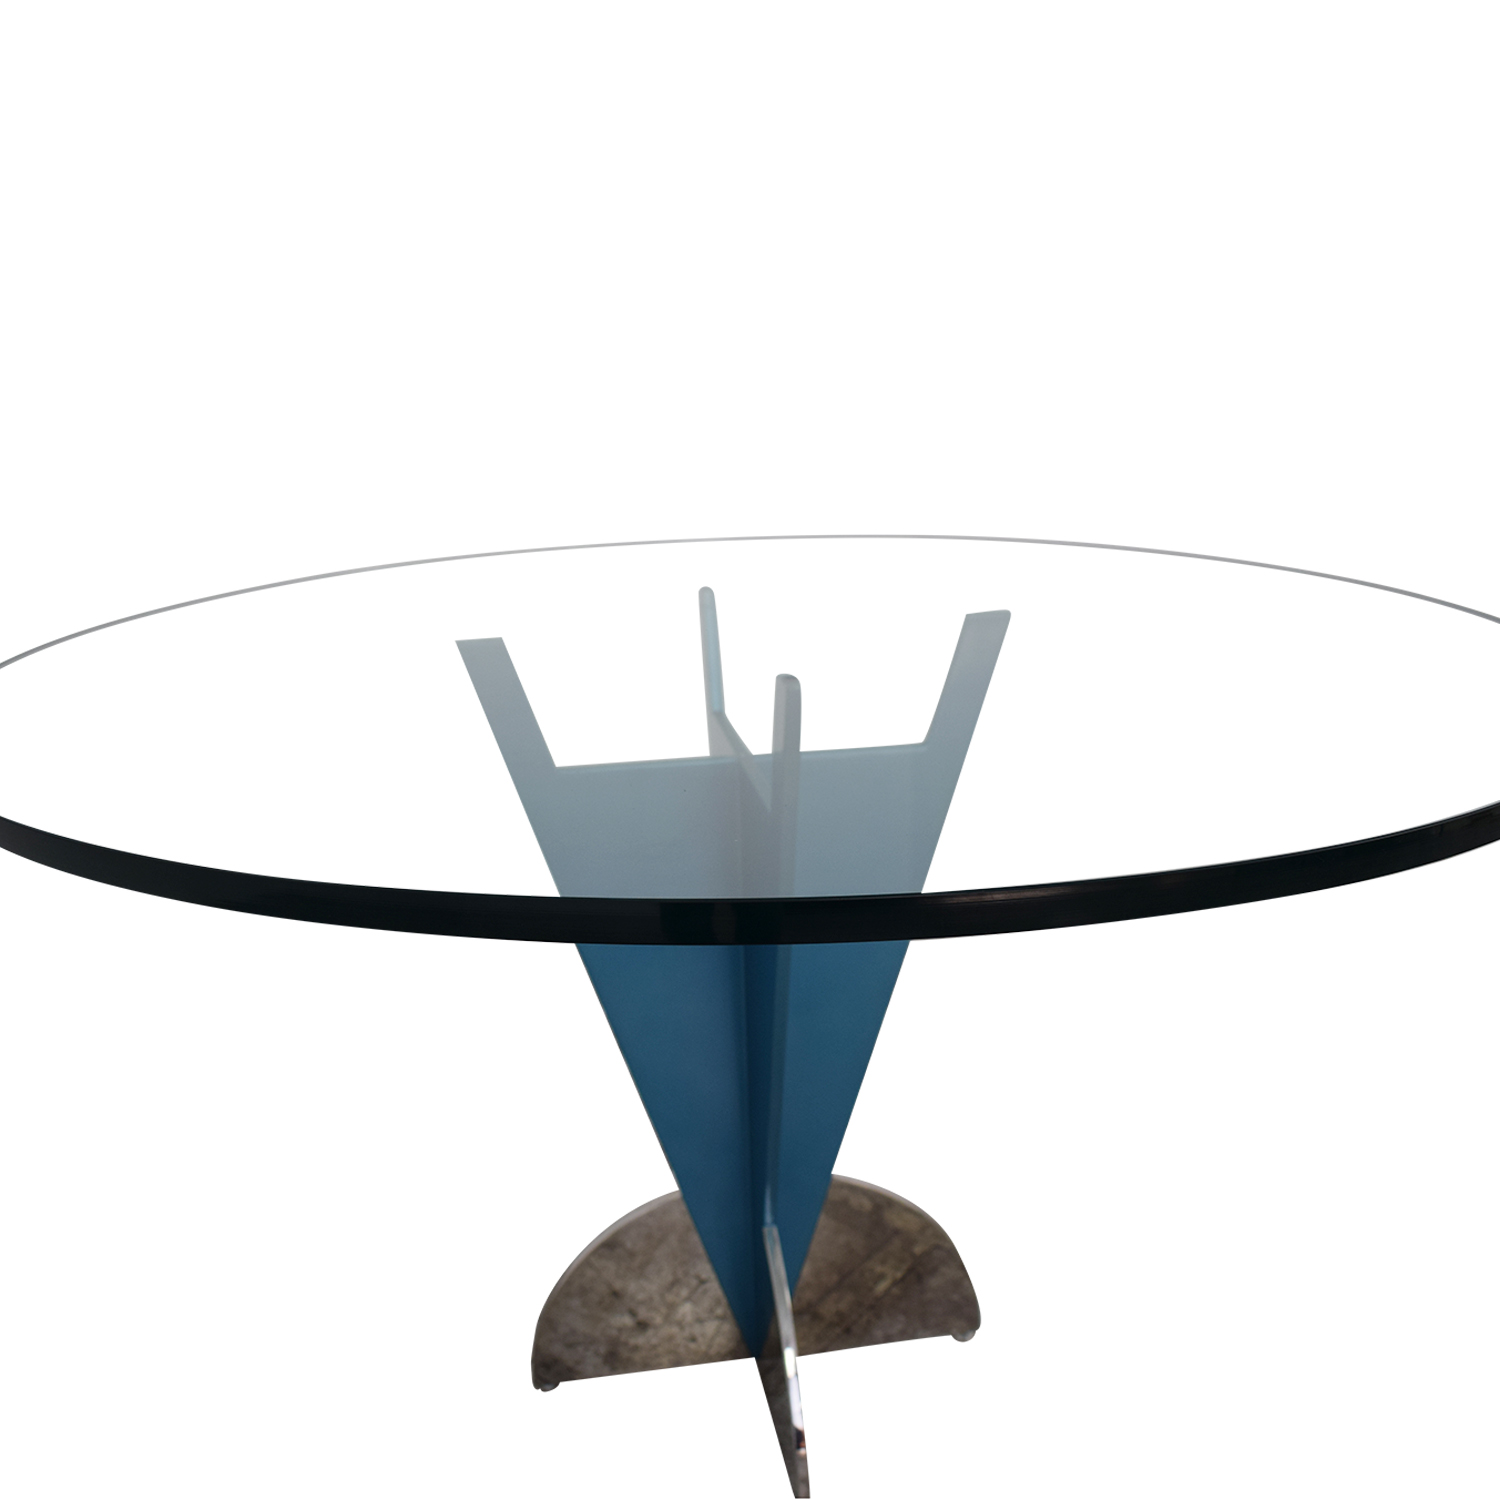 Fasem Fasem Glass Dining Table dimensions